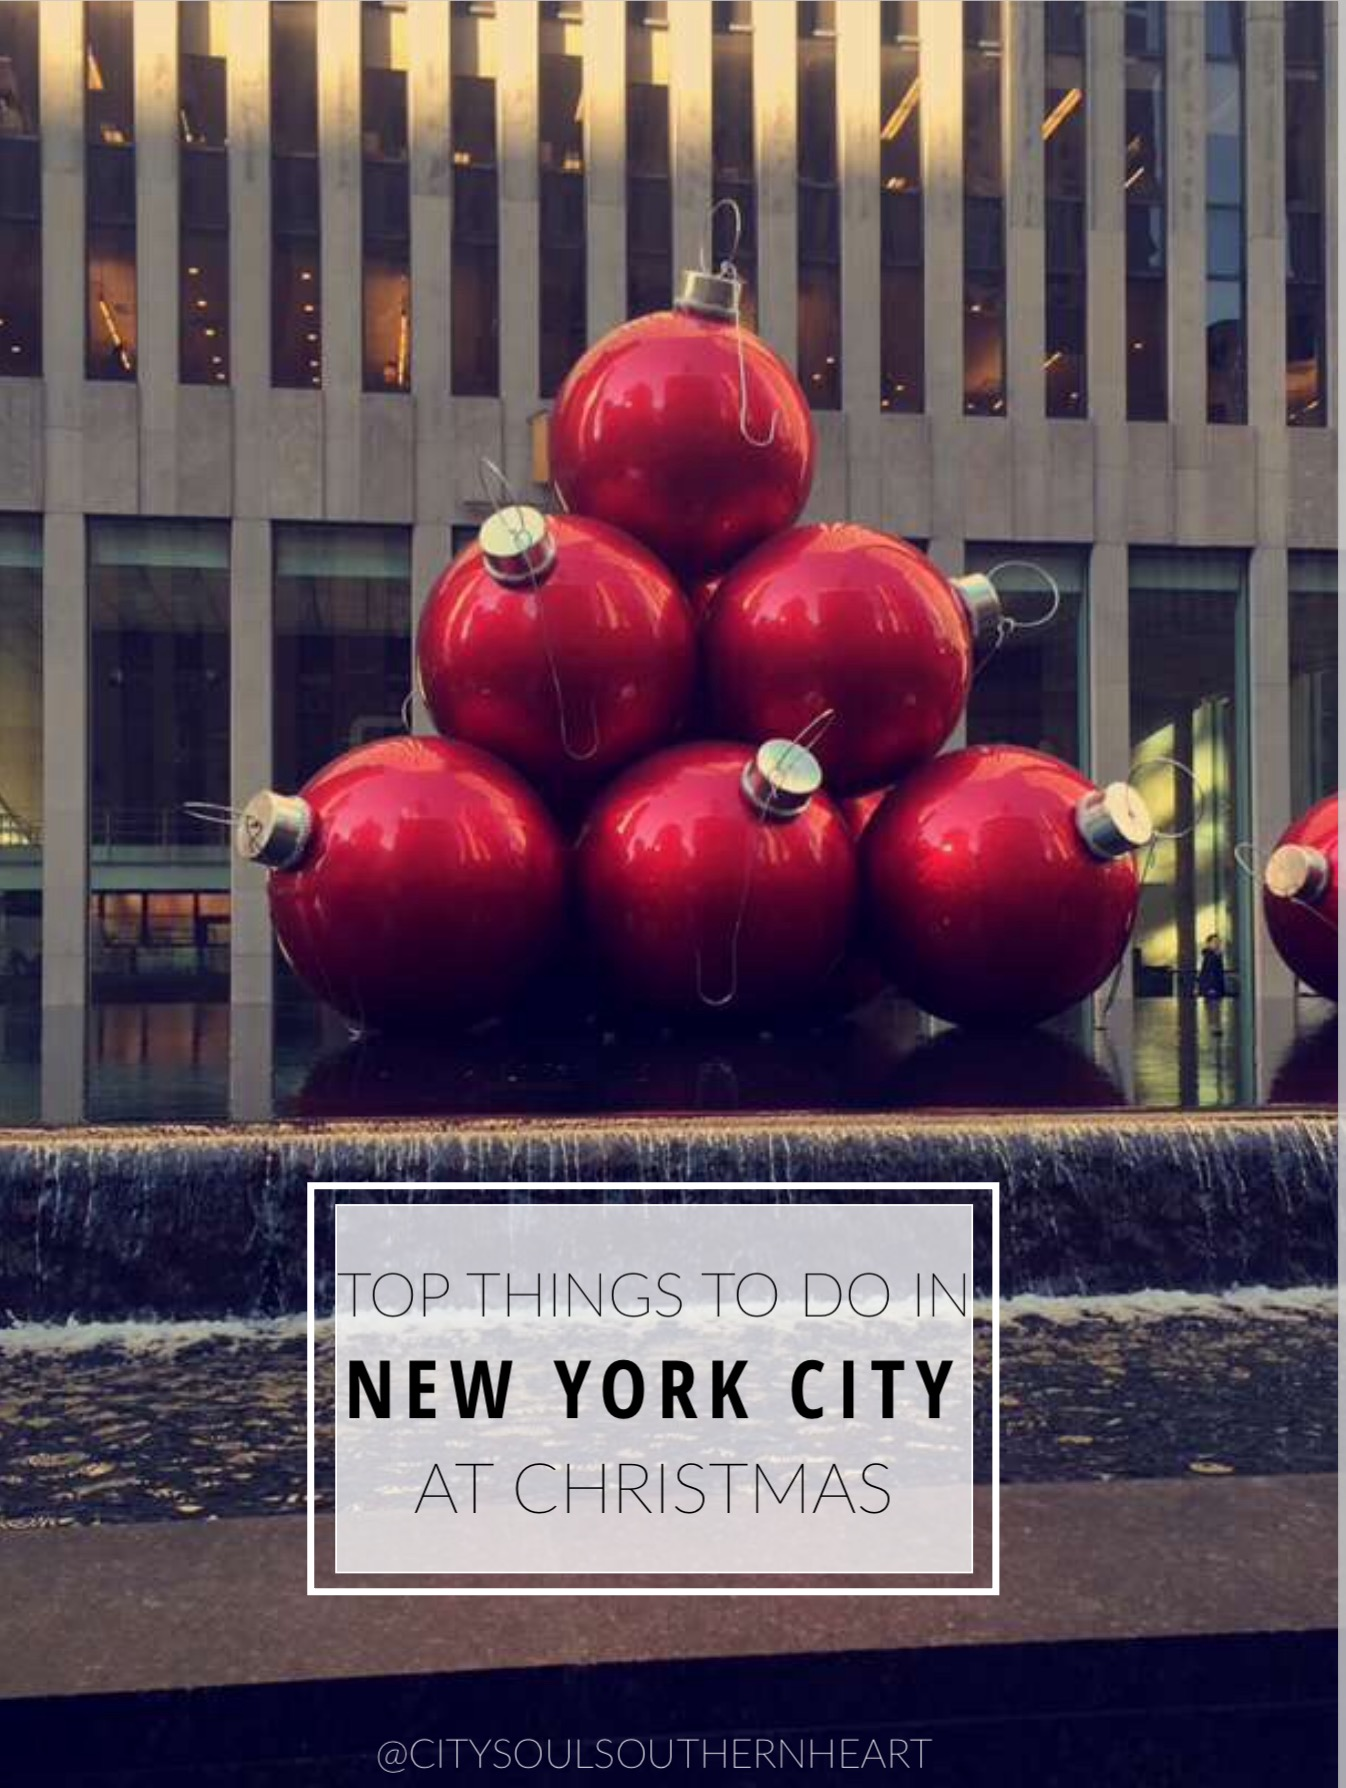 Top 10 things to do in new york city during christmas for New york city thing to do